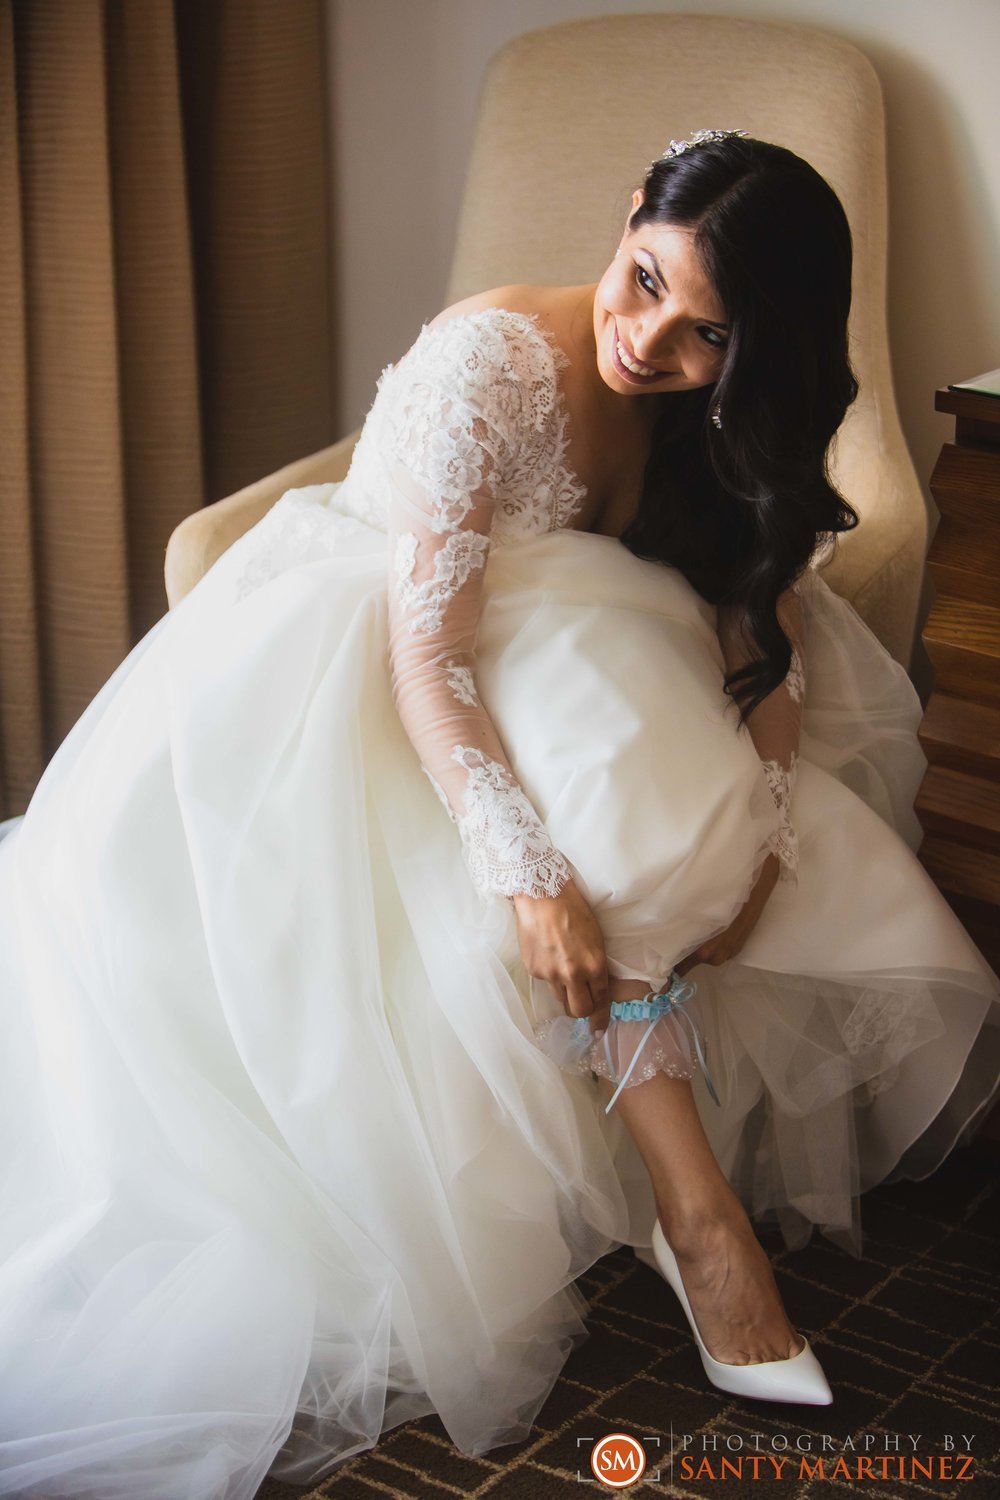 Wedding Epic Hotel Miami - Photography by Santy Martinez-22.jpg